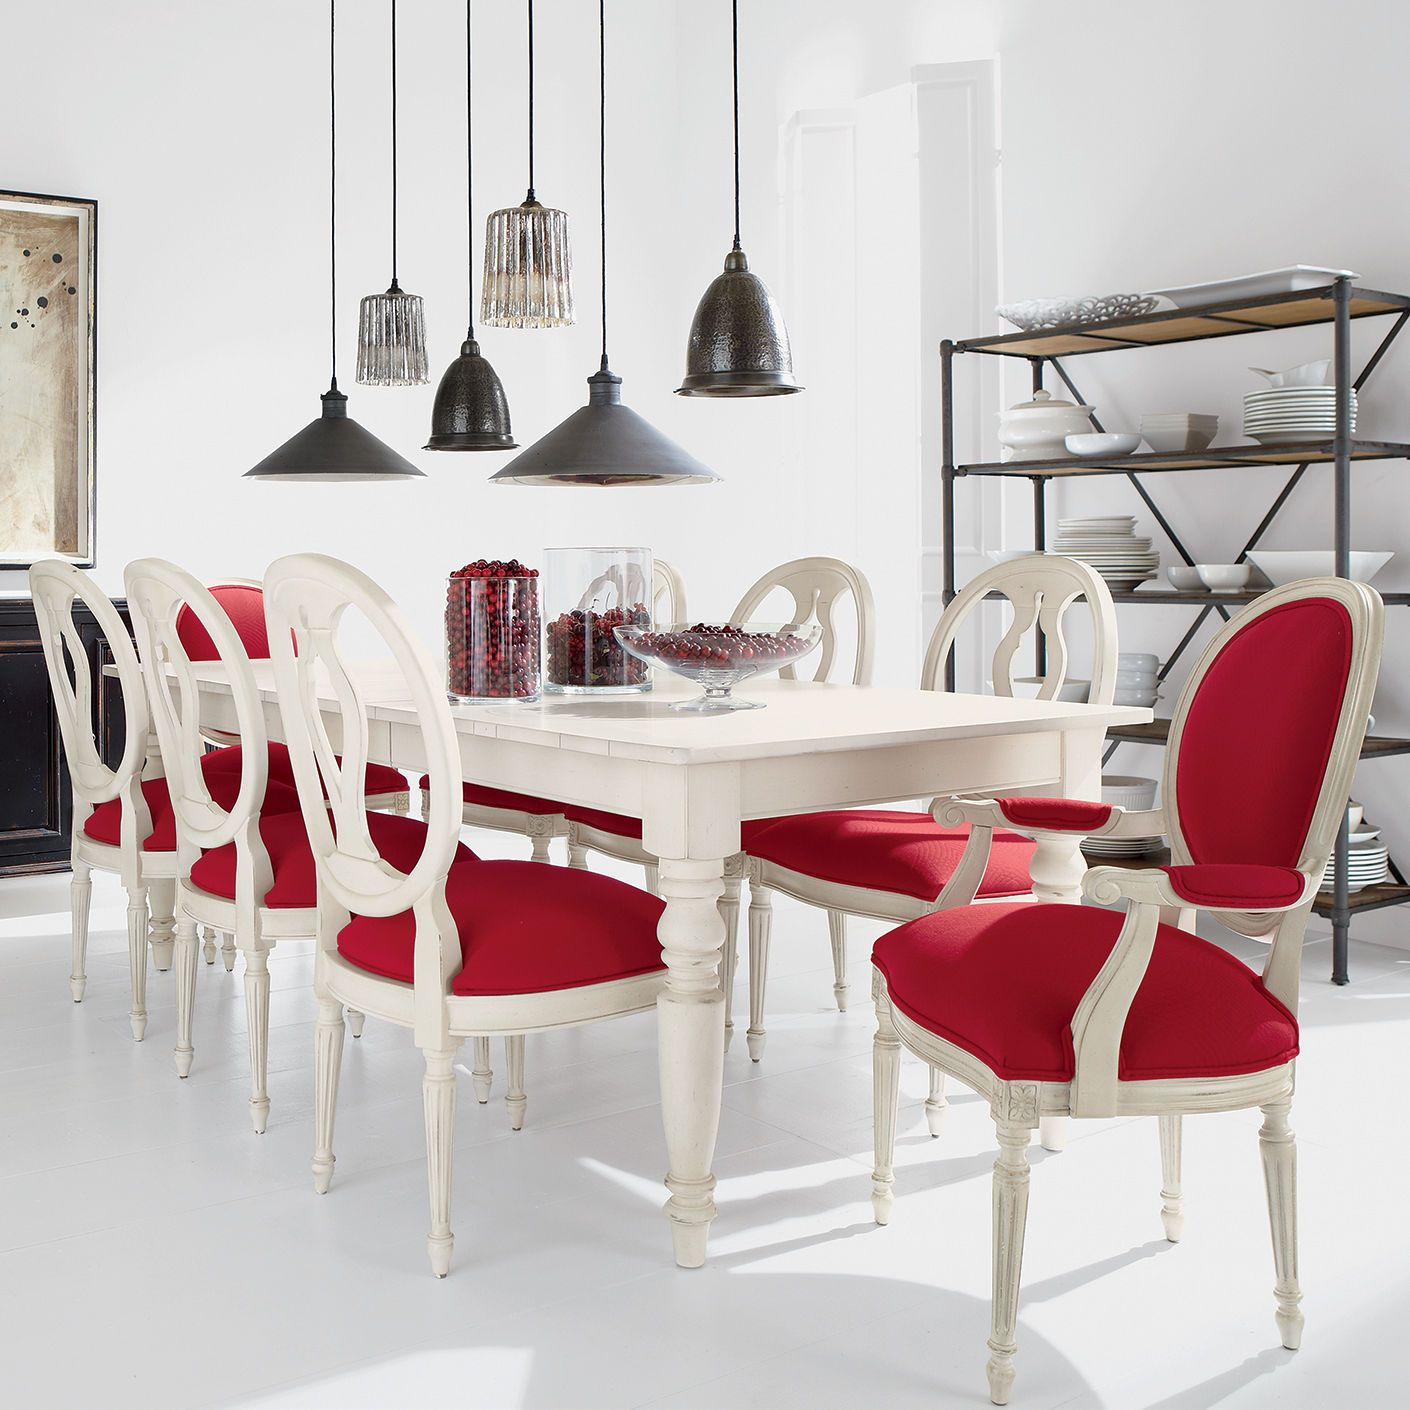 Ethan Allen Discontinued Dining Room Furniture